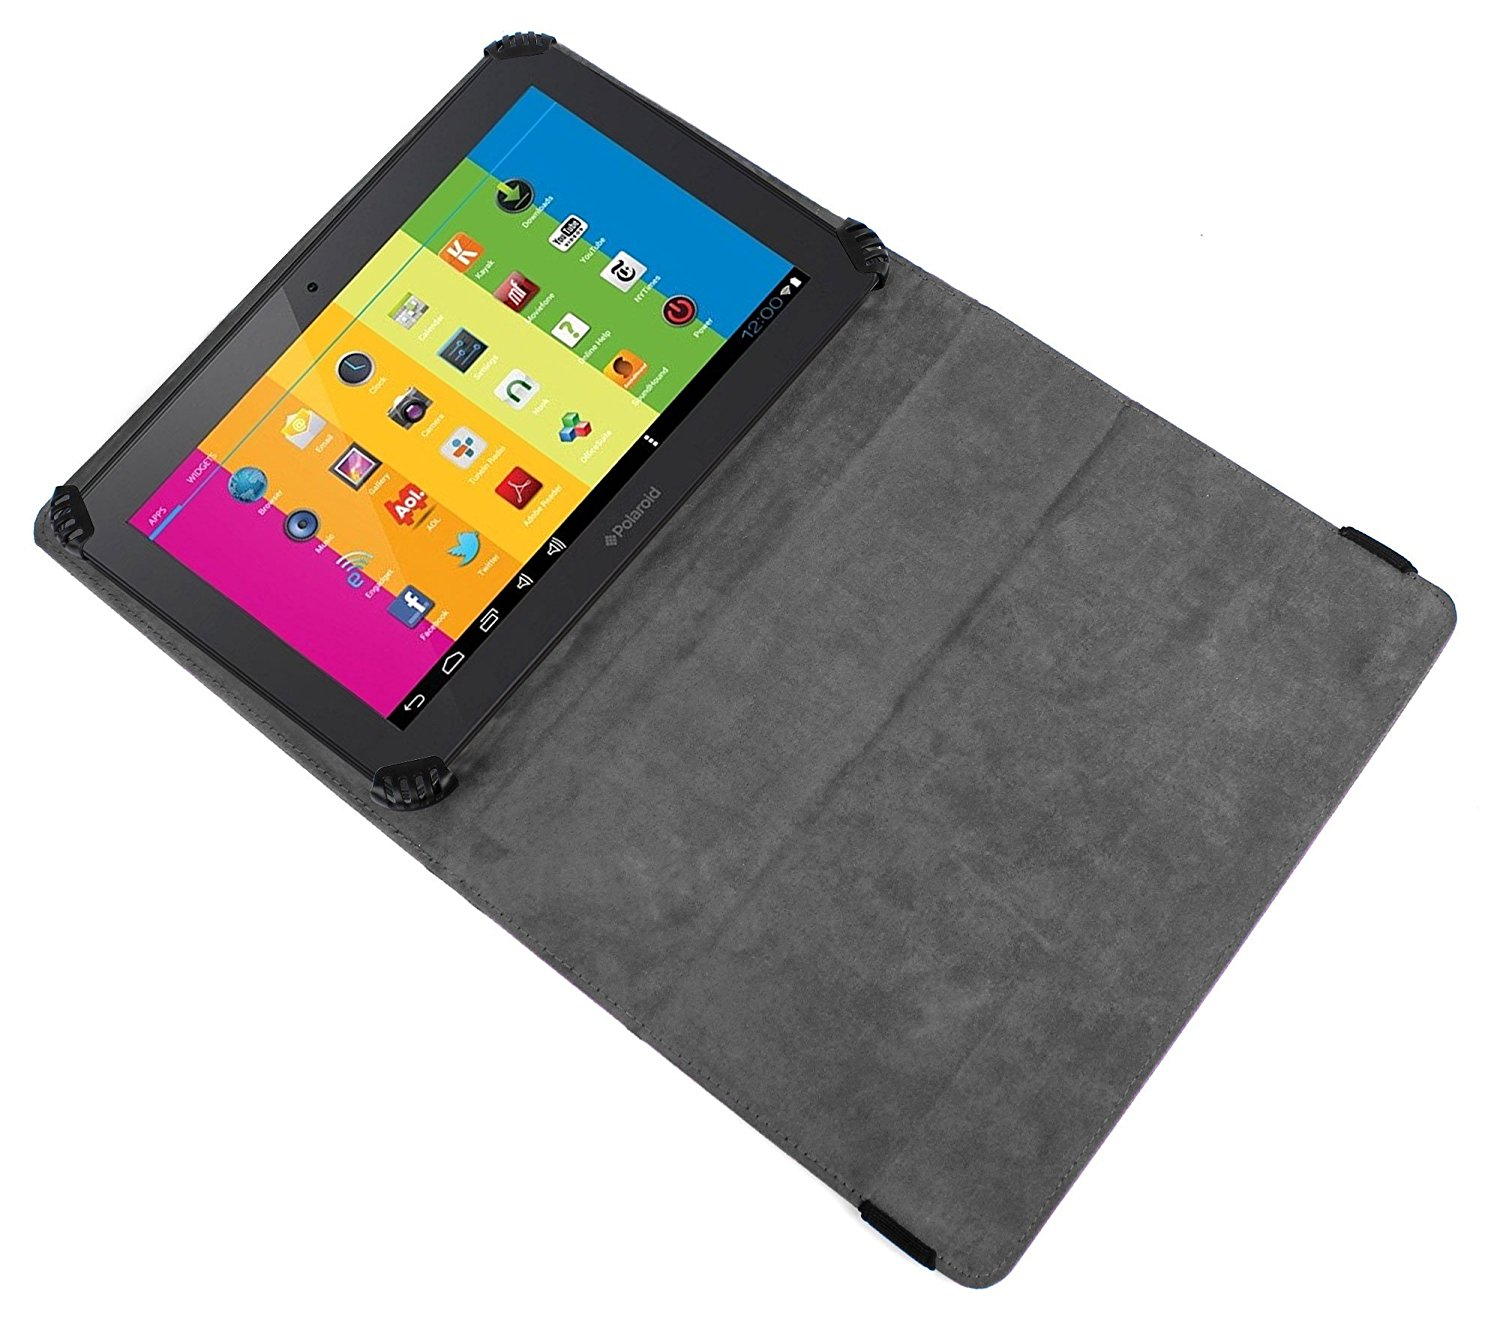 de429cff3a Get Quotations · DURAGADGET New PU Leather Case Cover With Built In Flip  Stand For Polaroid 10.1